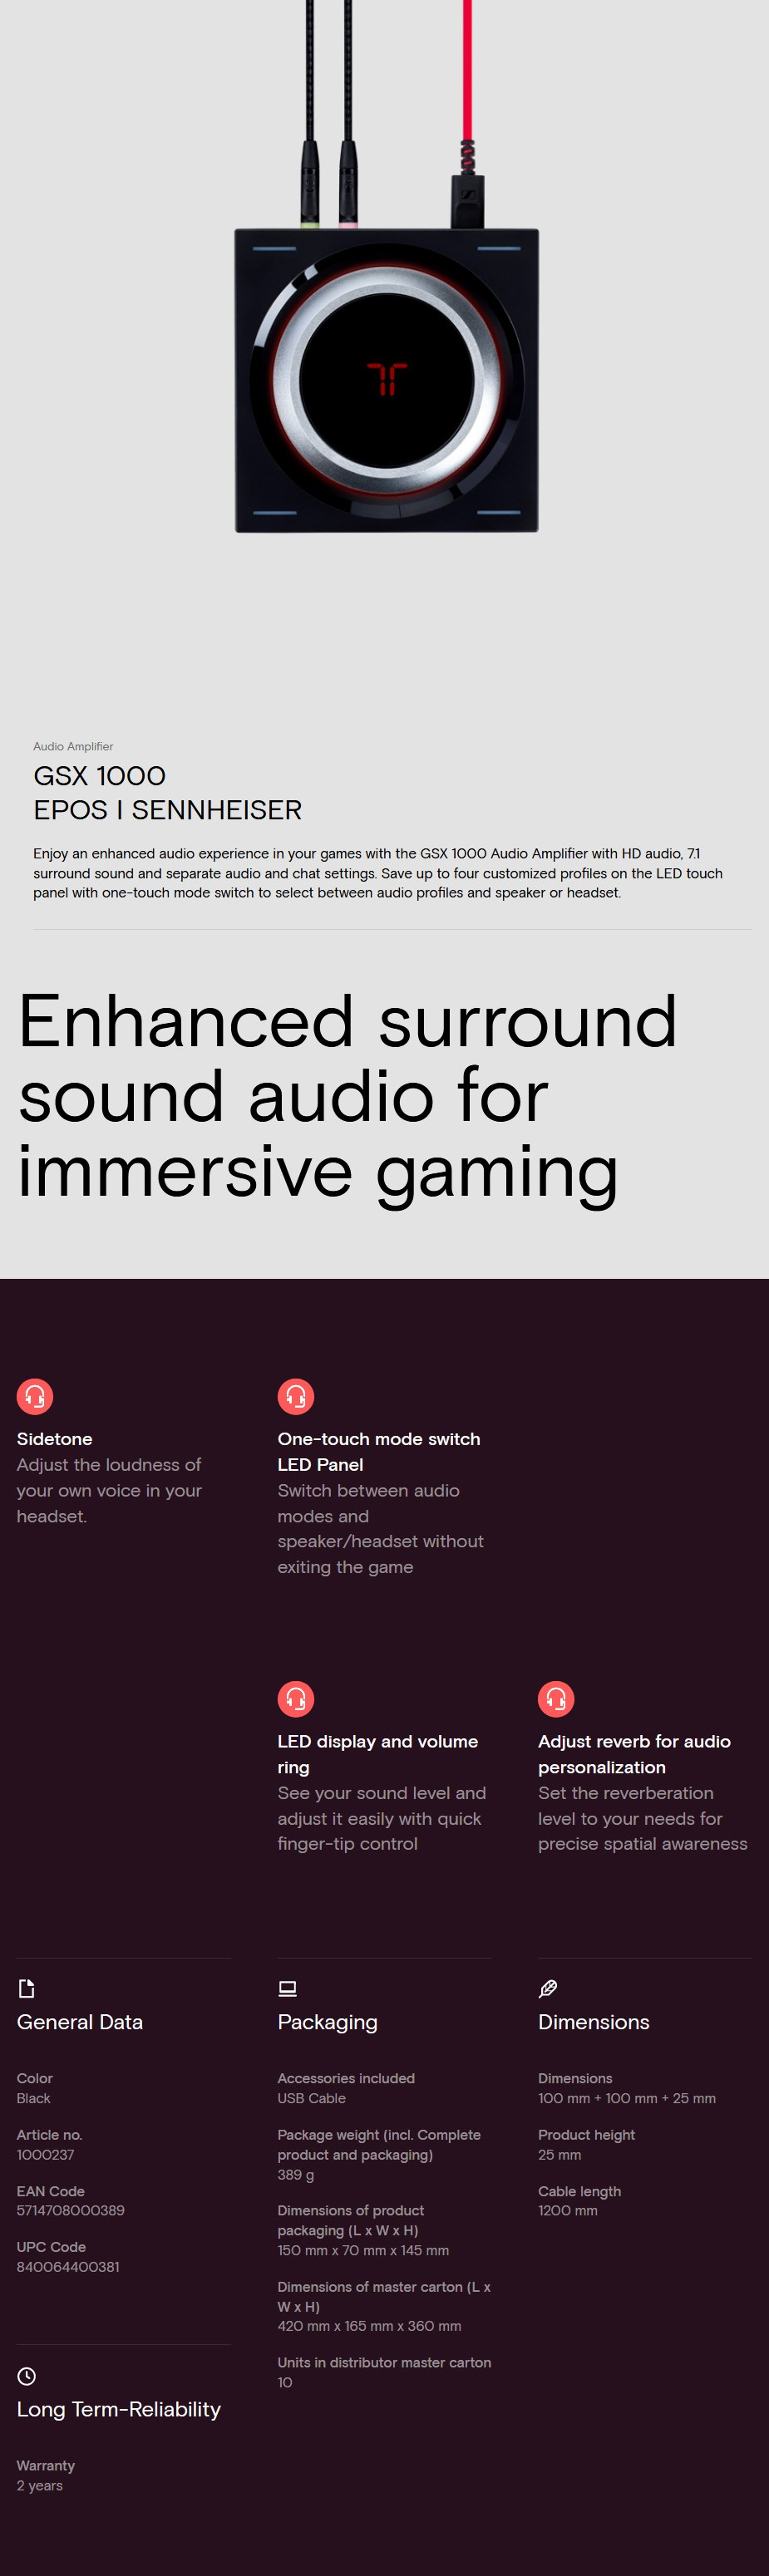 A large marketing image providing additional information about the product EPOS Gaming GSX 1000 Audio Amplifier - Additional alt info not provided